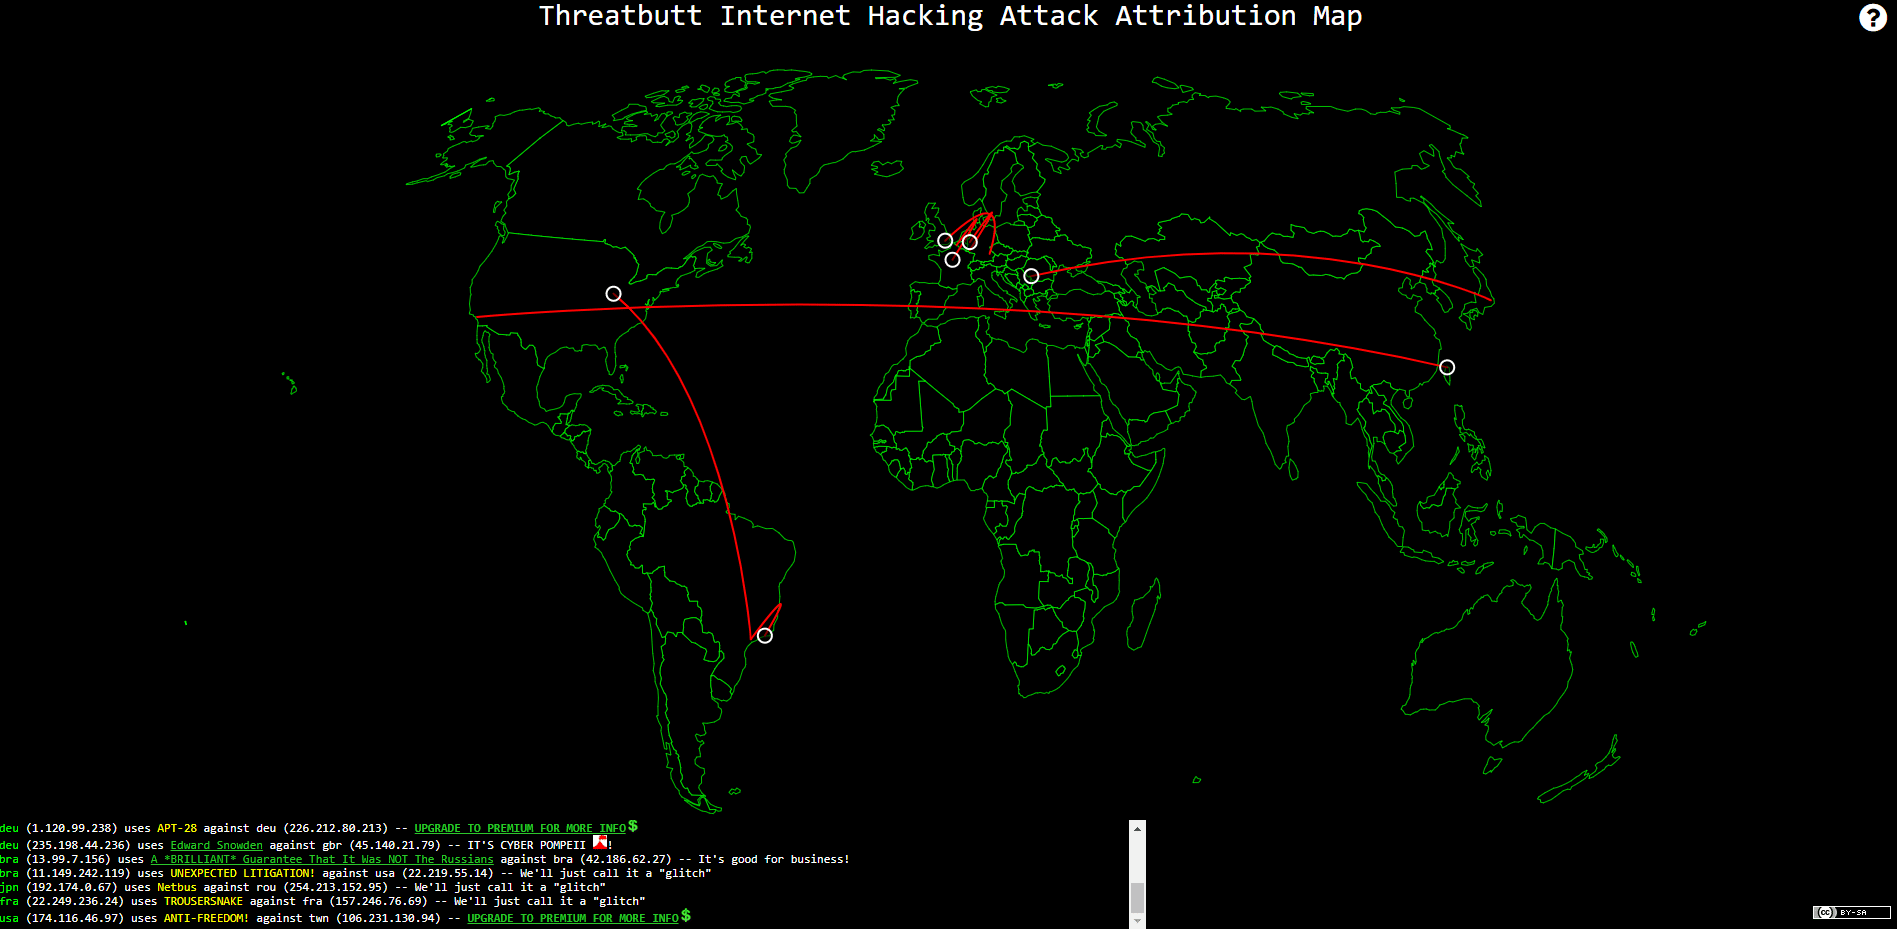 Cyber Attack Map by Threatbutt